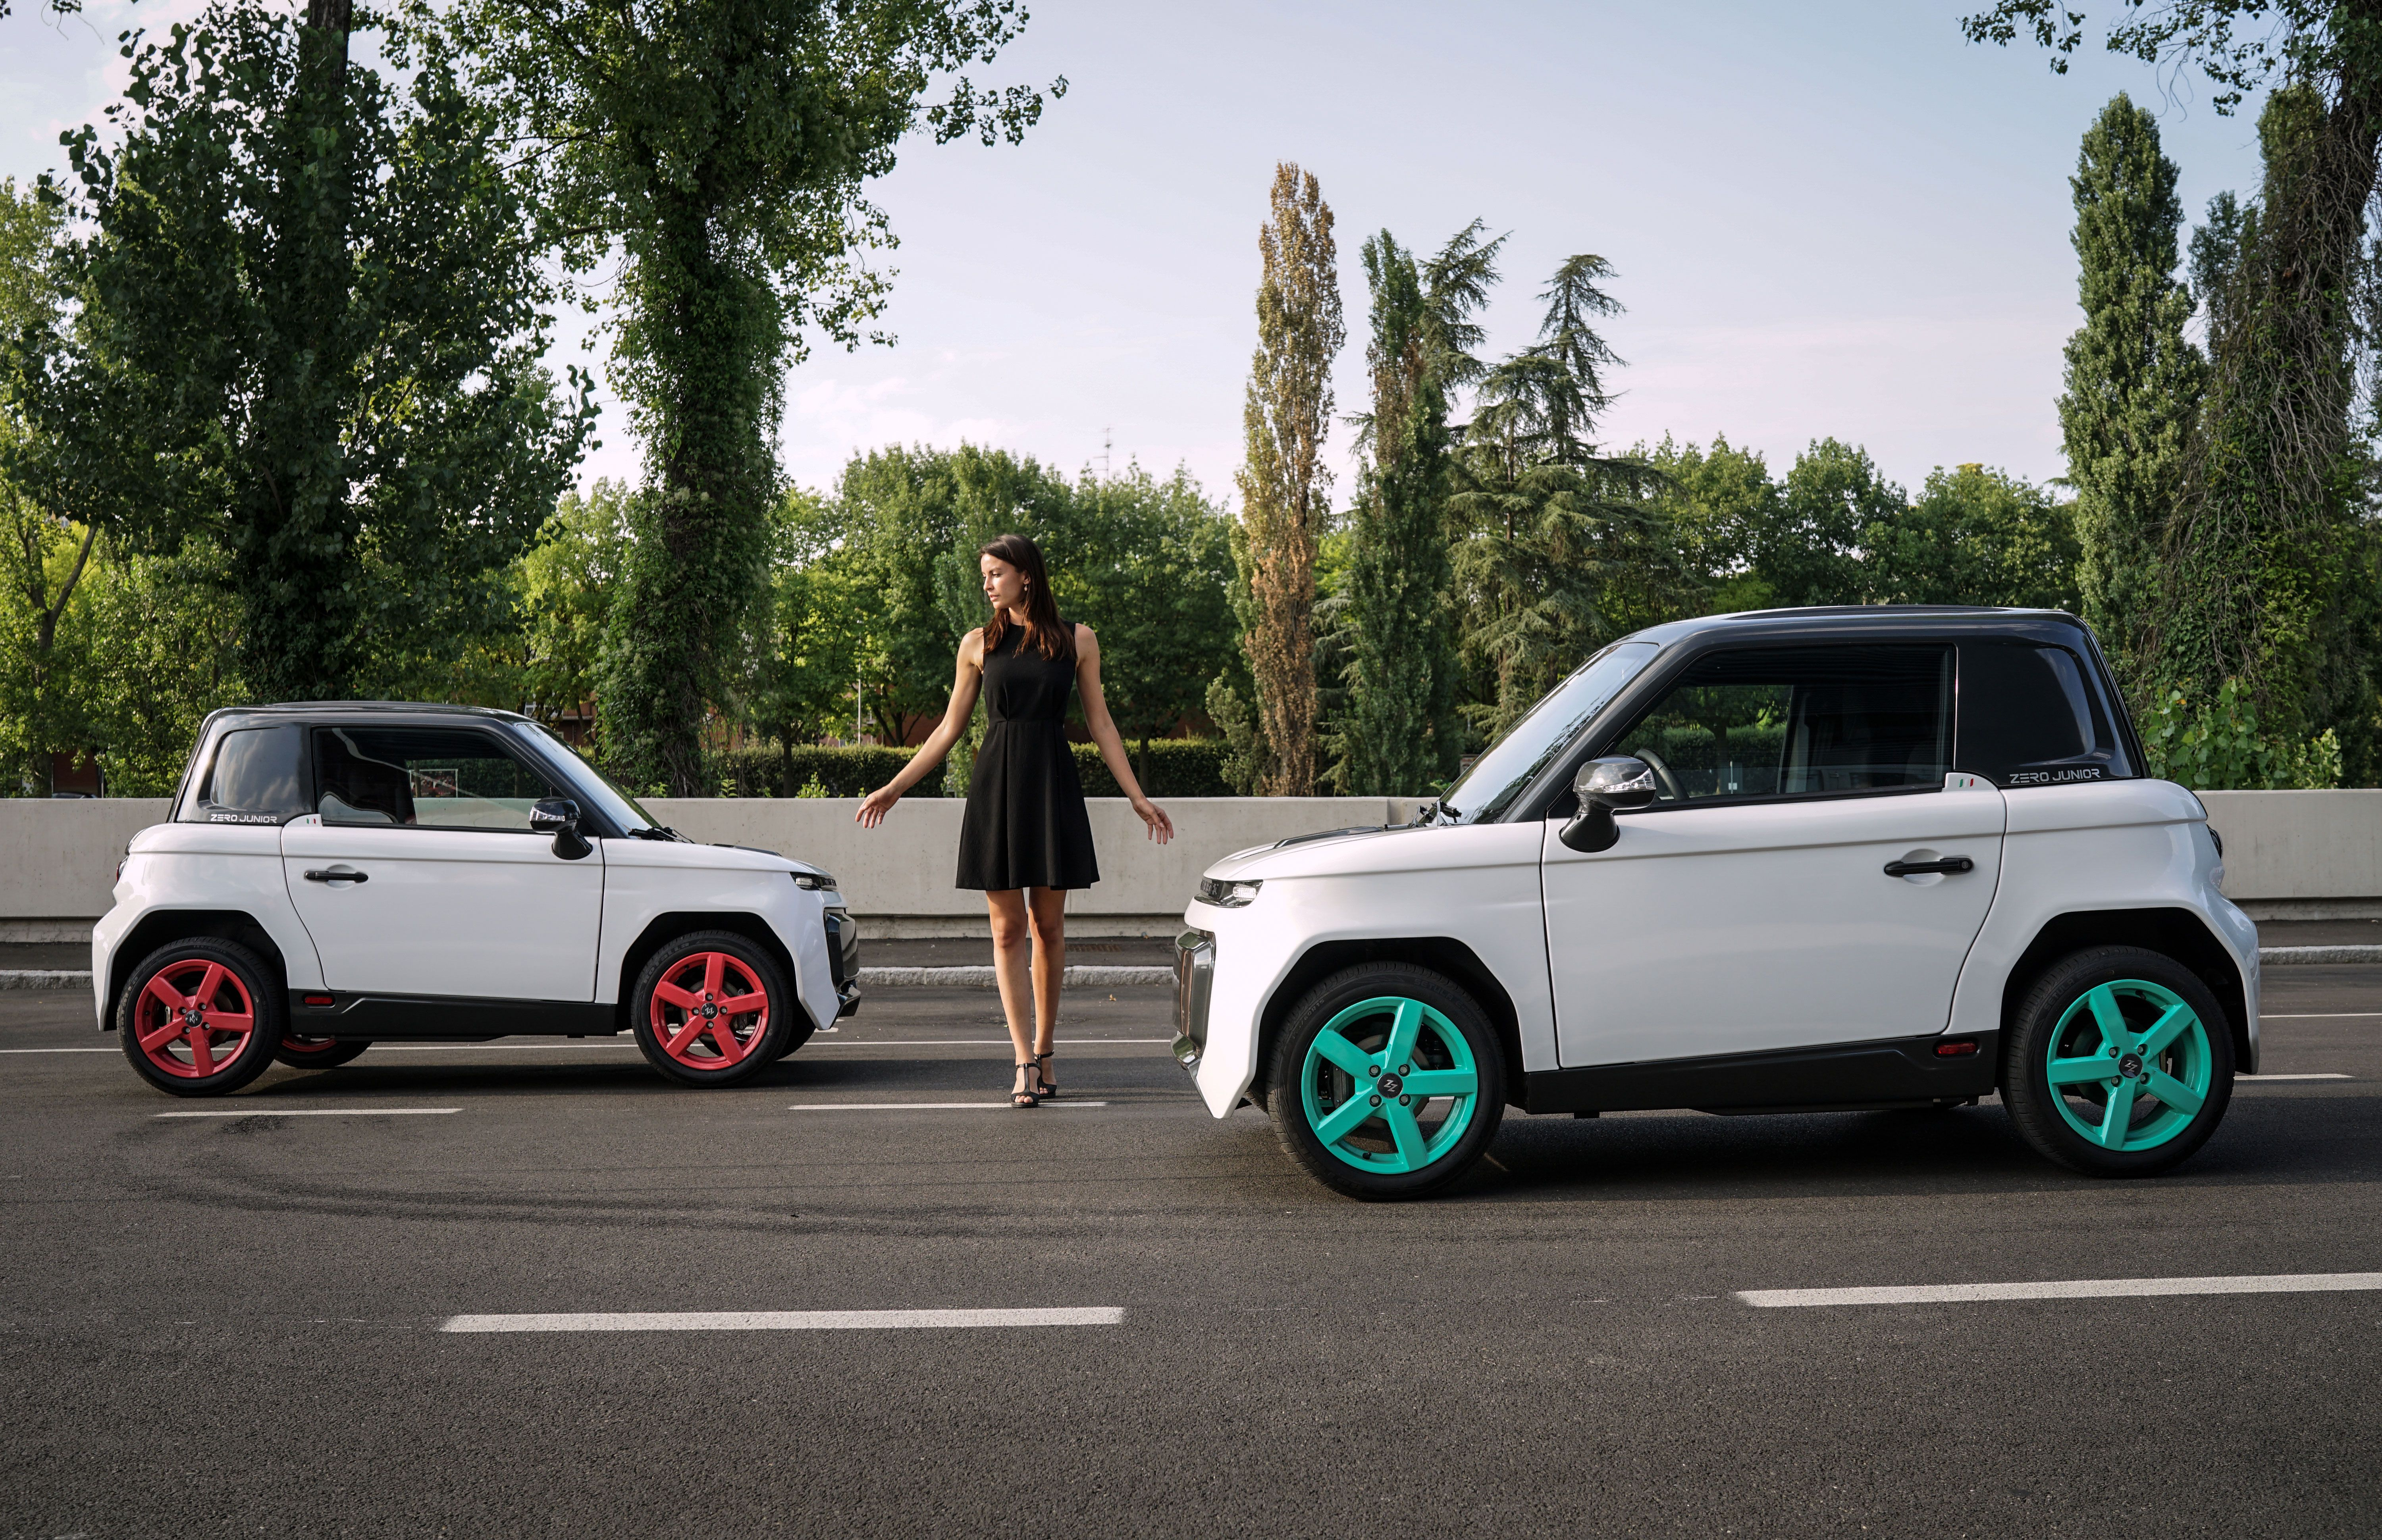 Pin by Sarah Means on Mini cars in 2020 City car, Mini